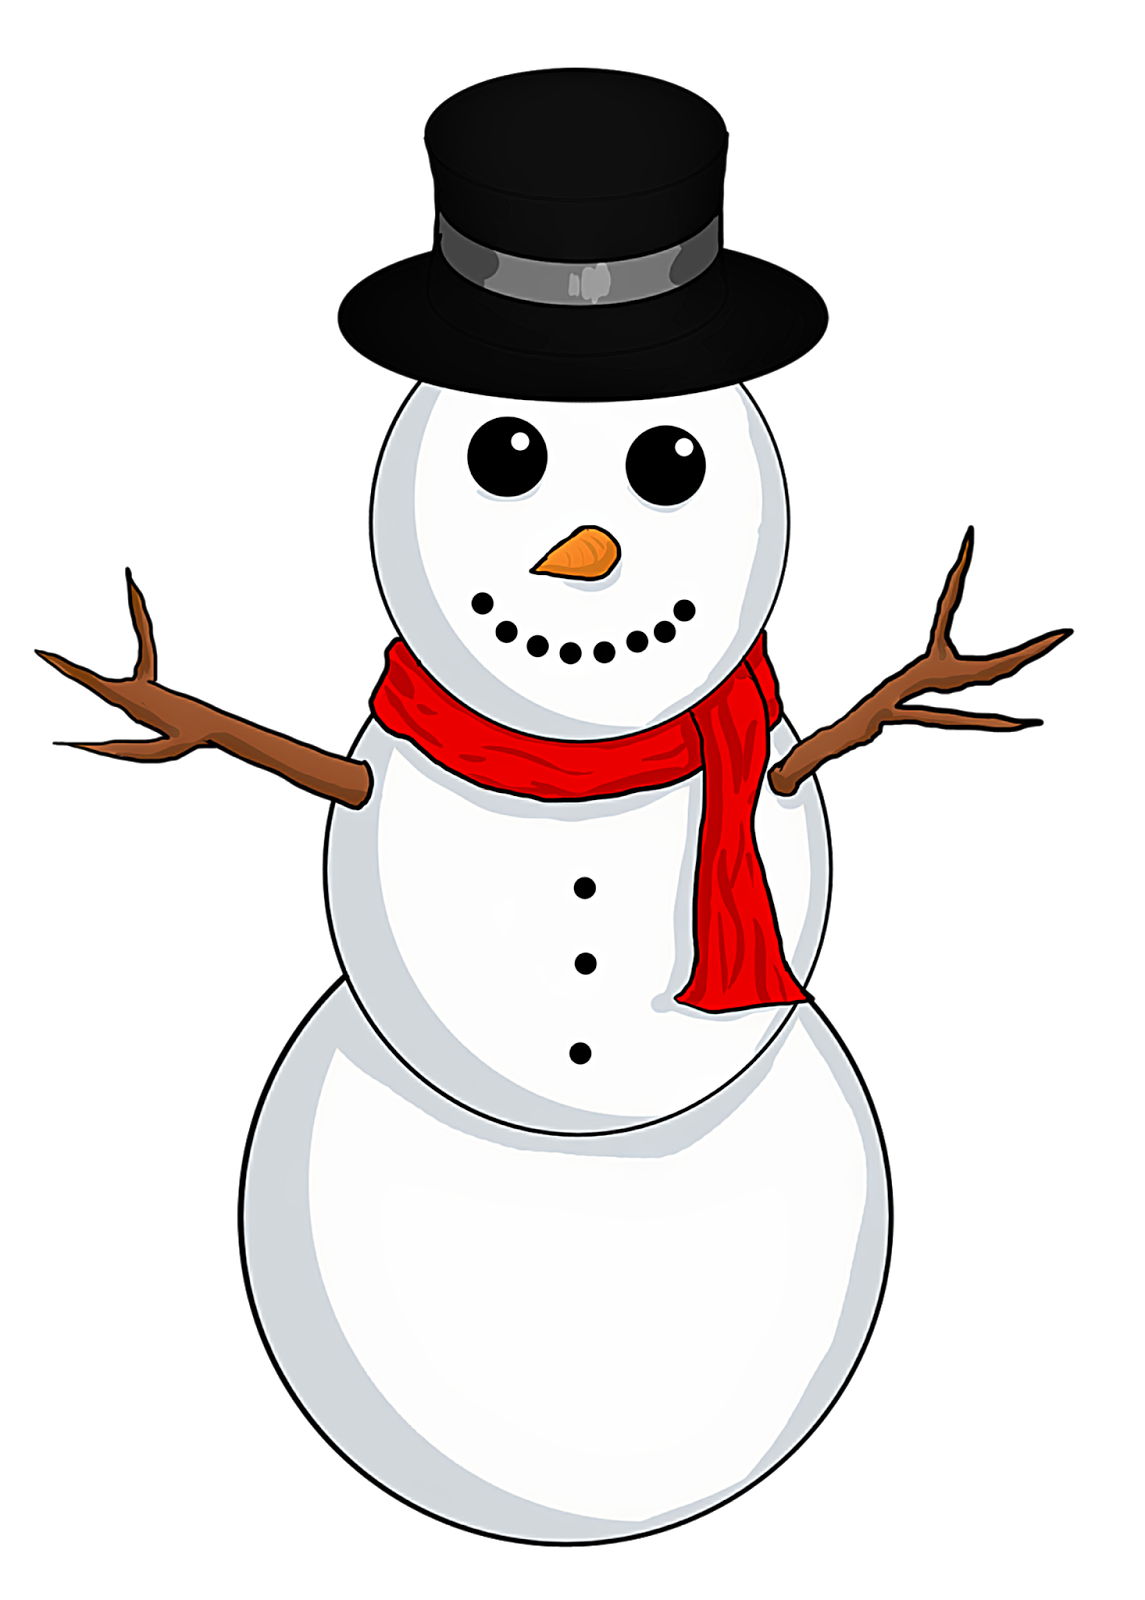 Free Christmas Snowman Clipart, Download Free Clip Art, Free Clip ... graphic free download